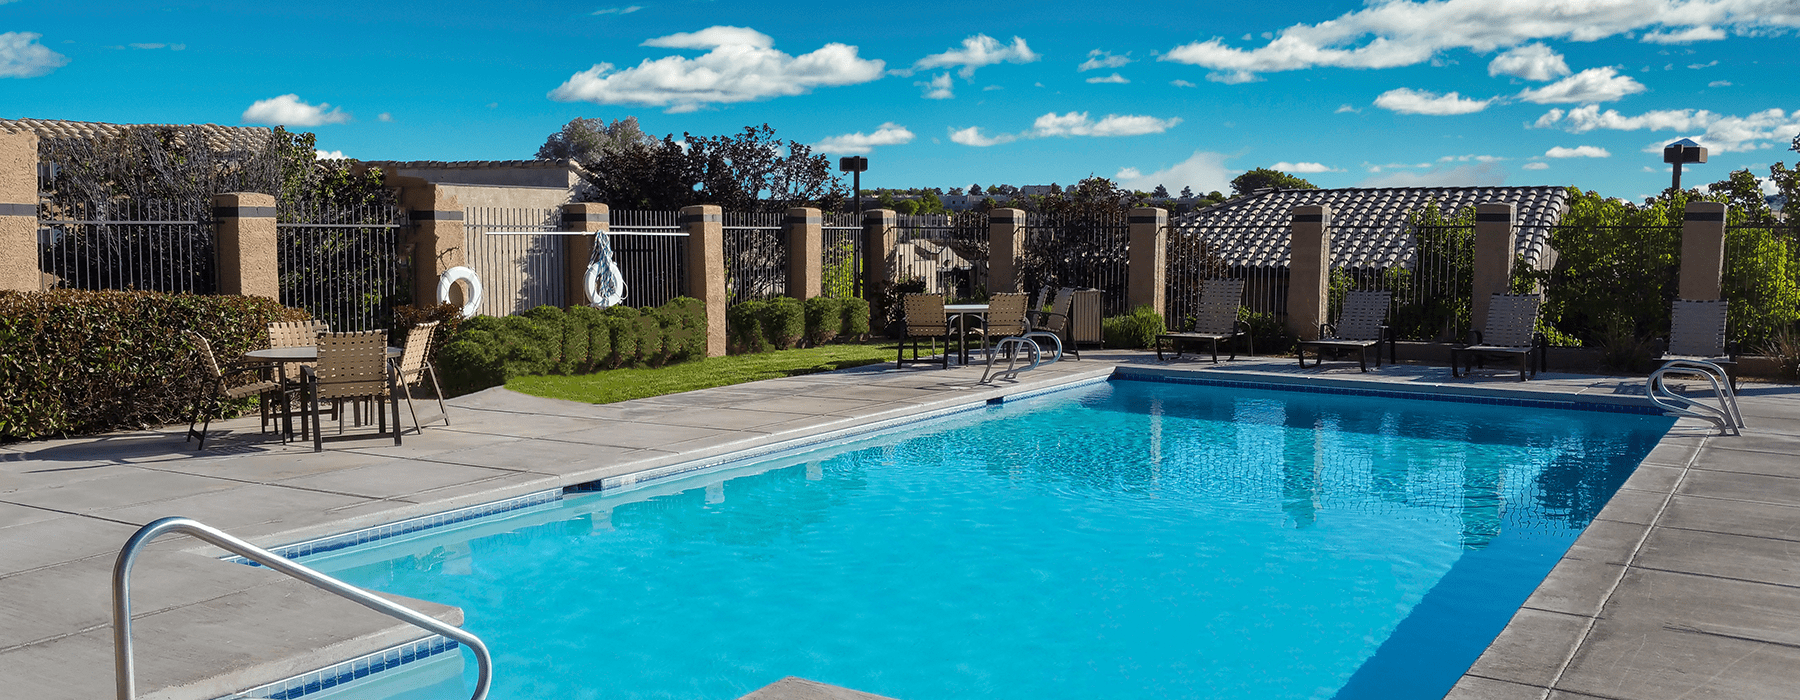 swimming pool with spacious seating areas and reclining chairs